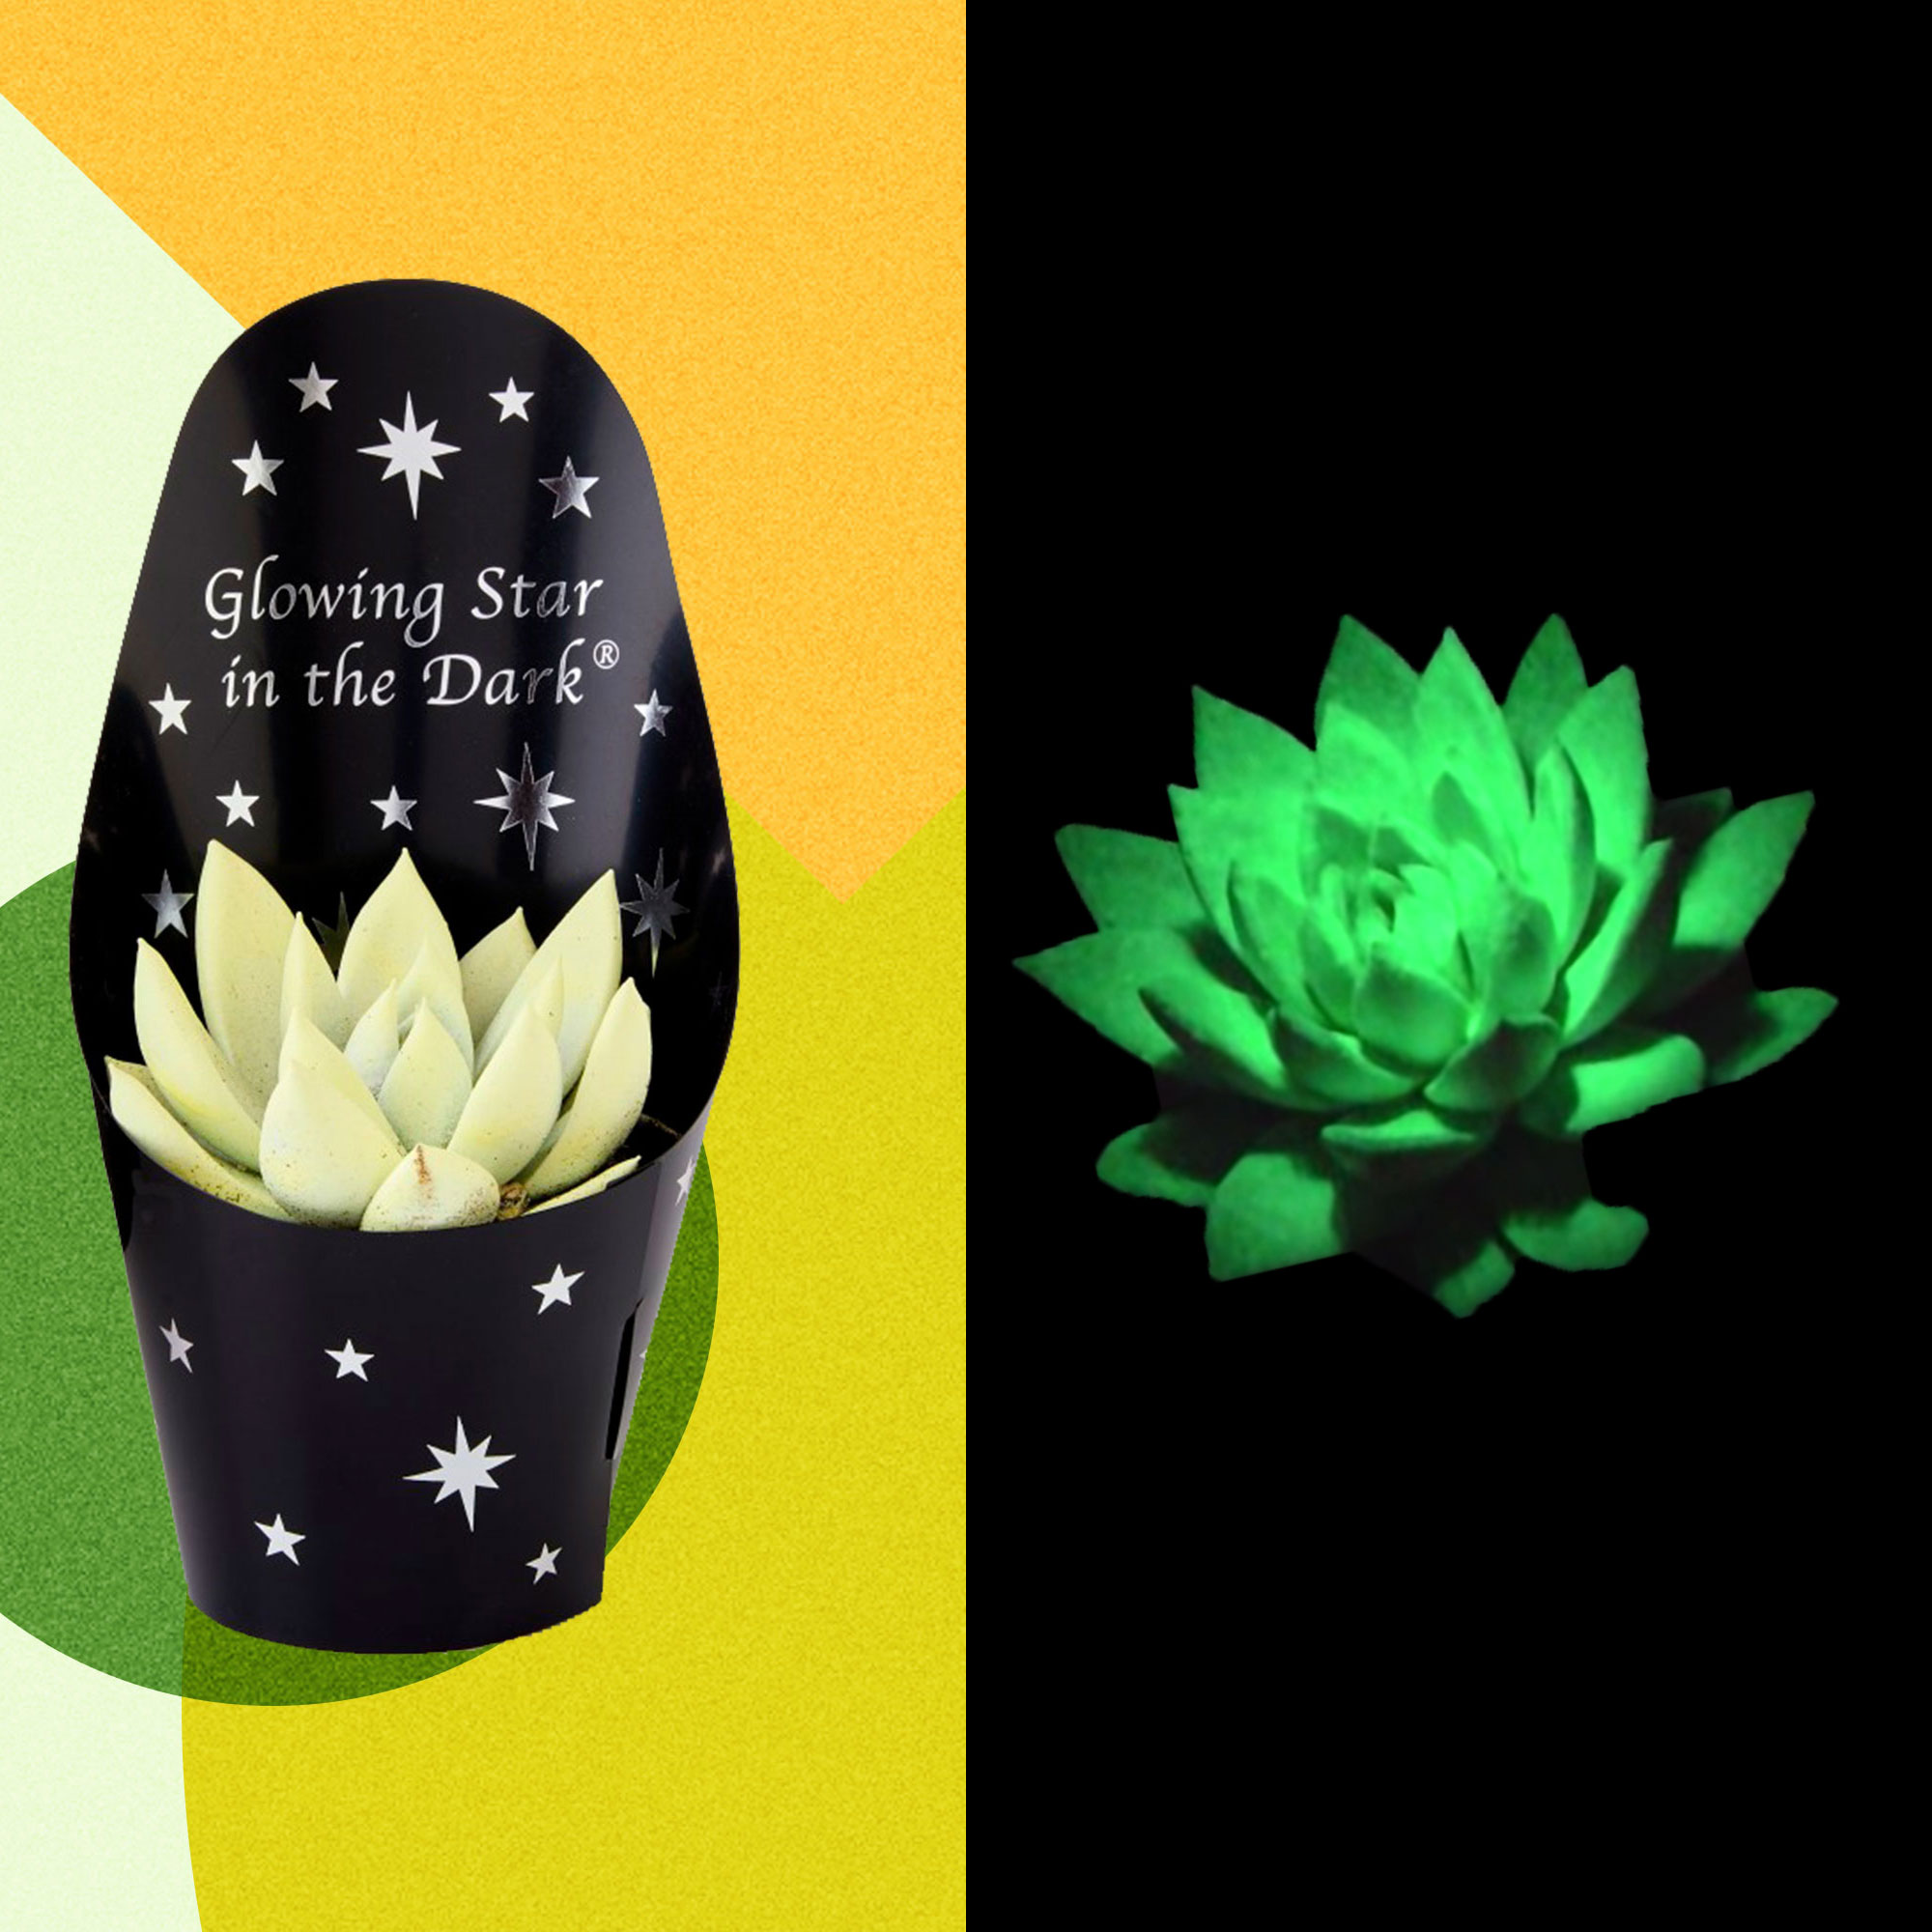 These Glow-in-the-Dark Succulents Cost Just $6 at Aldi